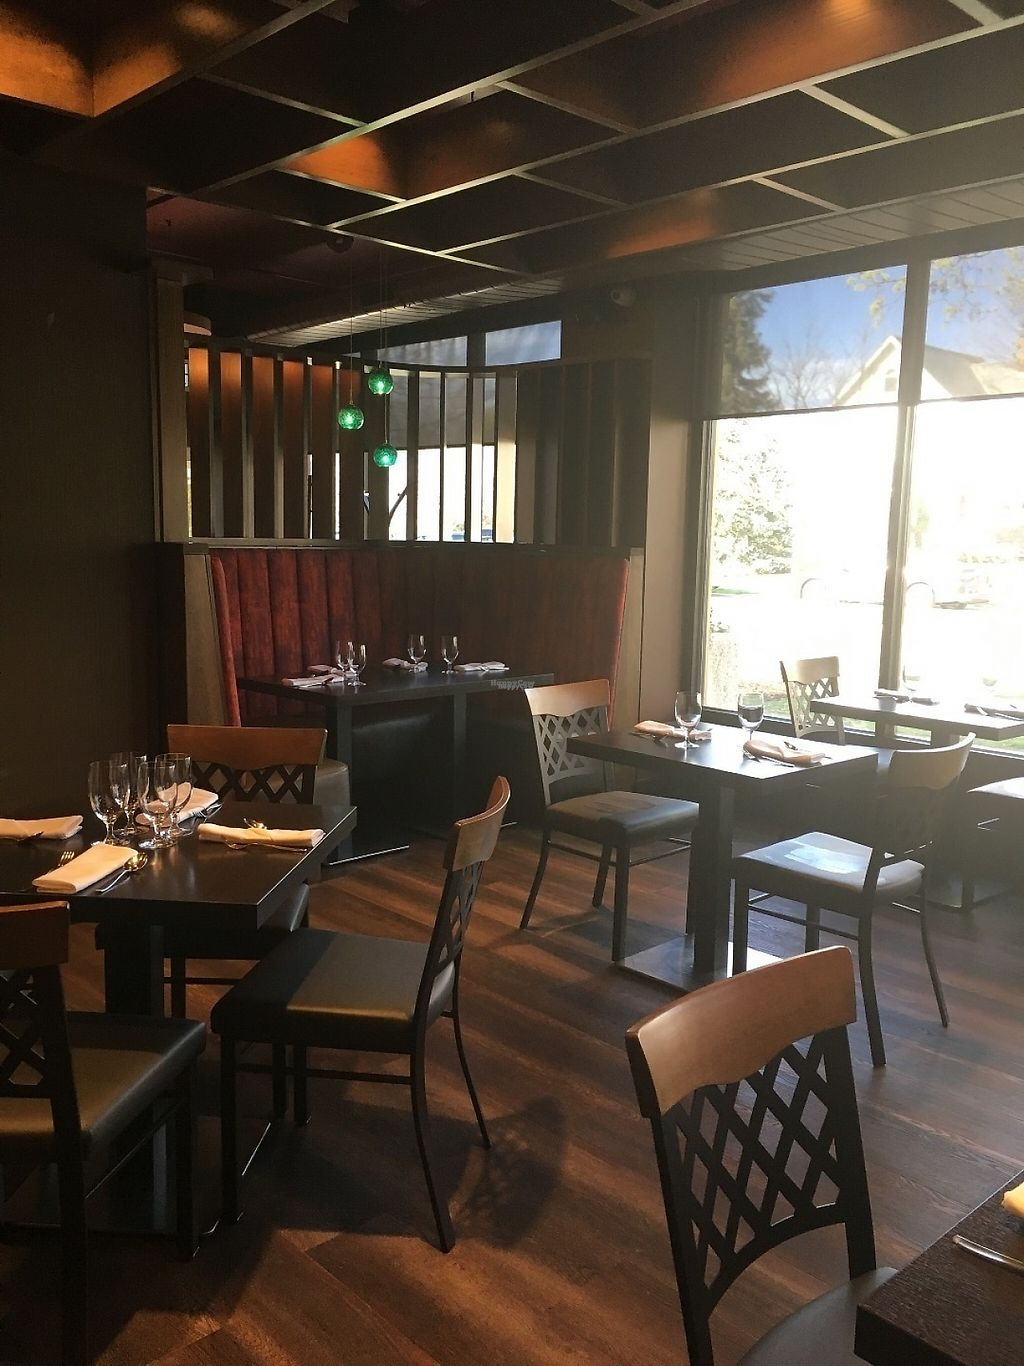 """Photo of Niagara's Finest Thai  by <a href=""""/members/profile/Brena"""">Brena</a> <br/>Restaurant interior 4 <br/> April 27, 2017  - <a href='/contact/abuse/image/90950/252897'>Report</a>"""